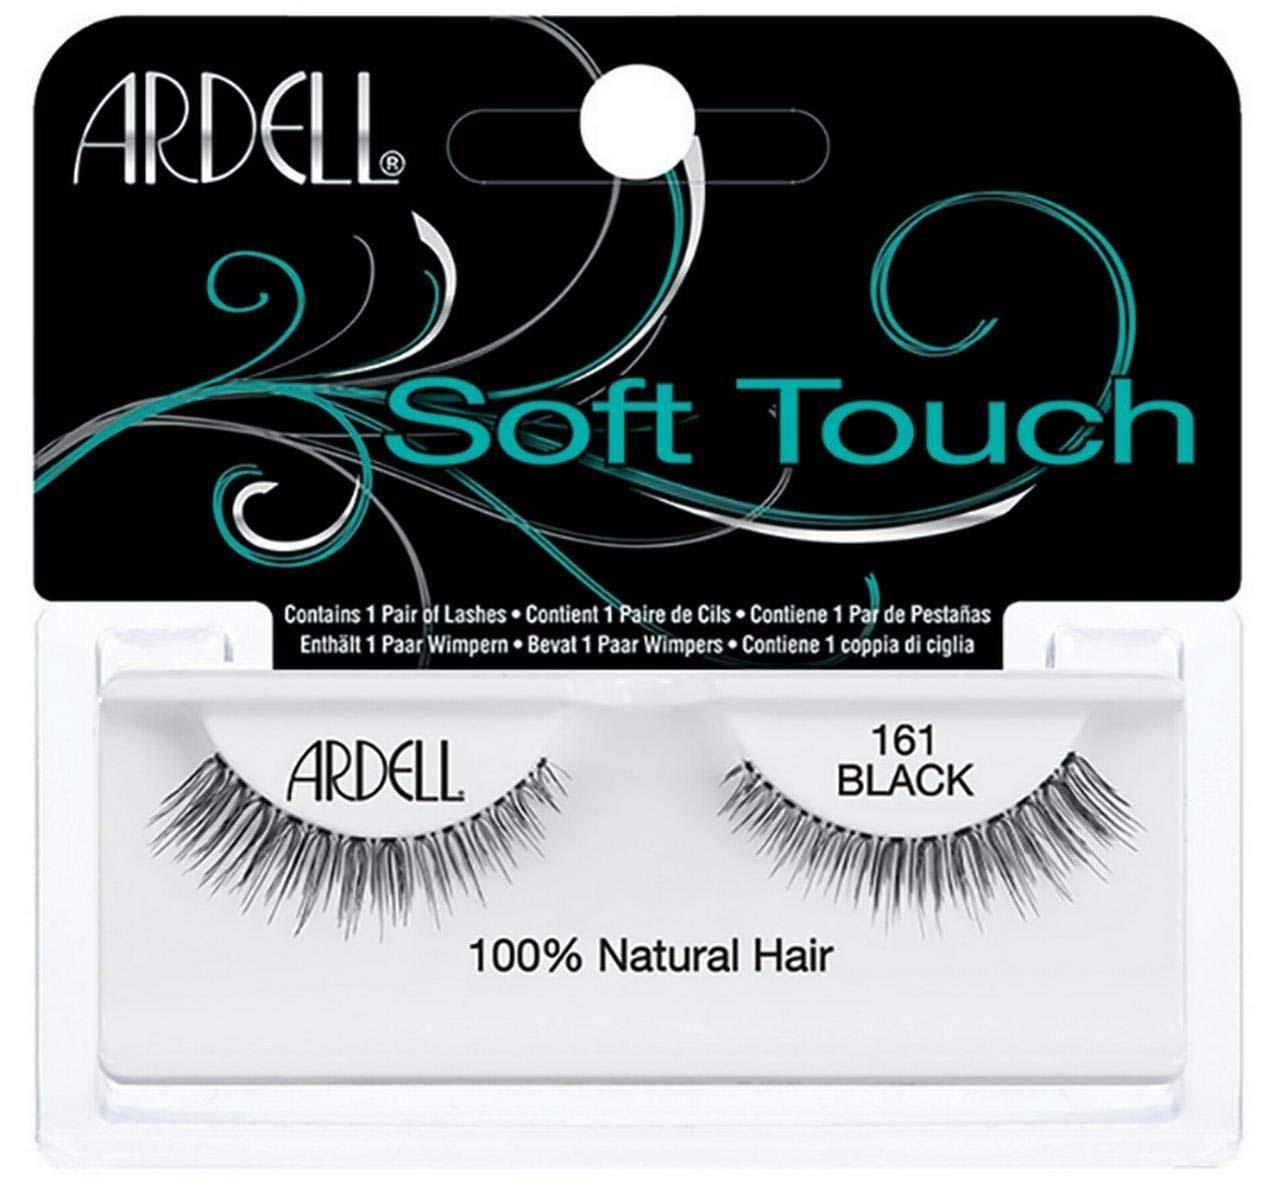 Ardell Soft Touch Lashes - 161 Black